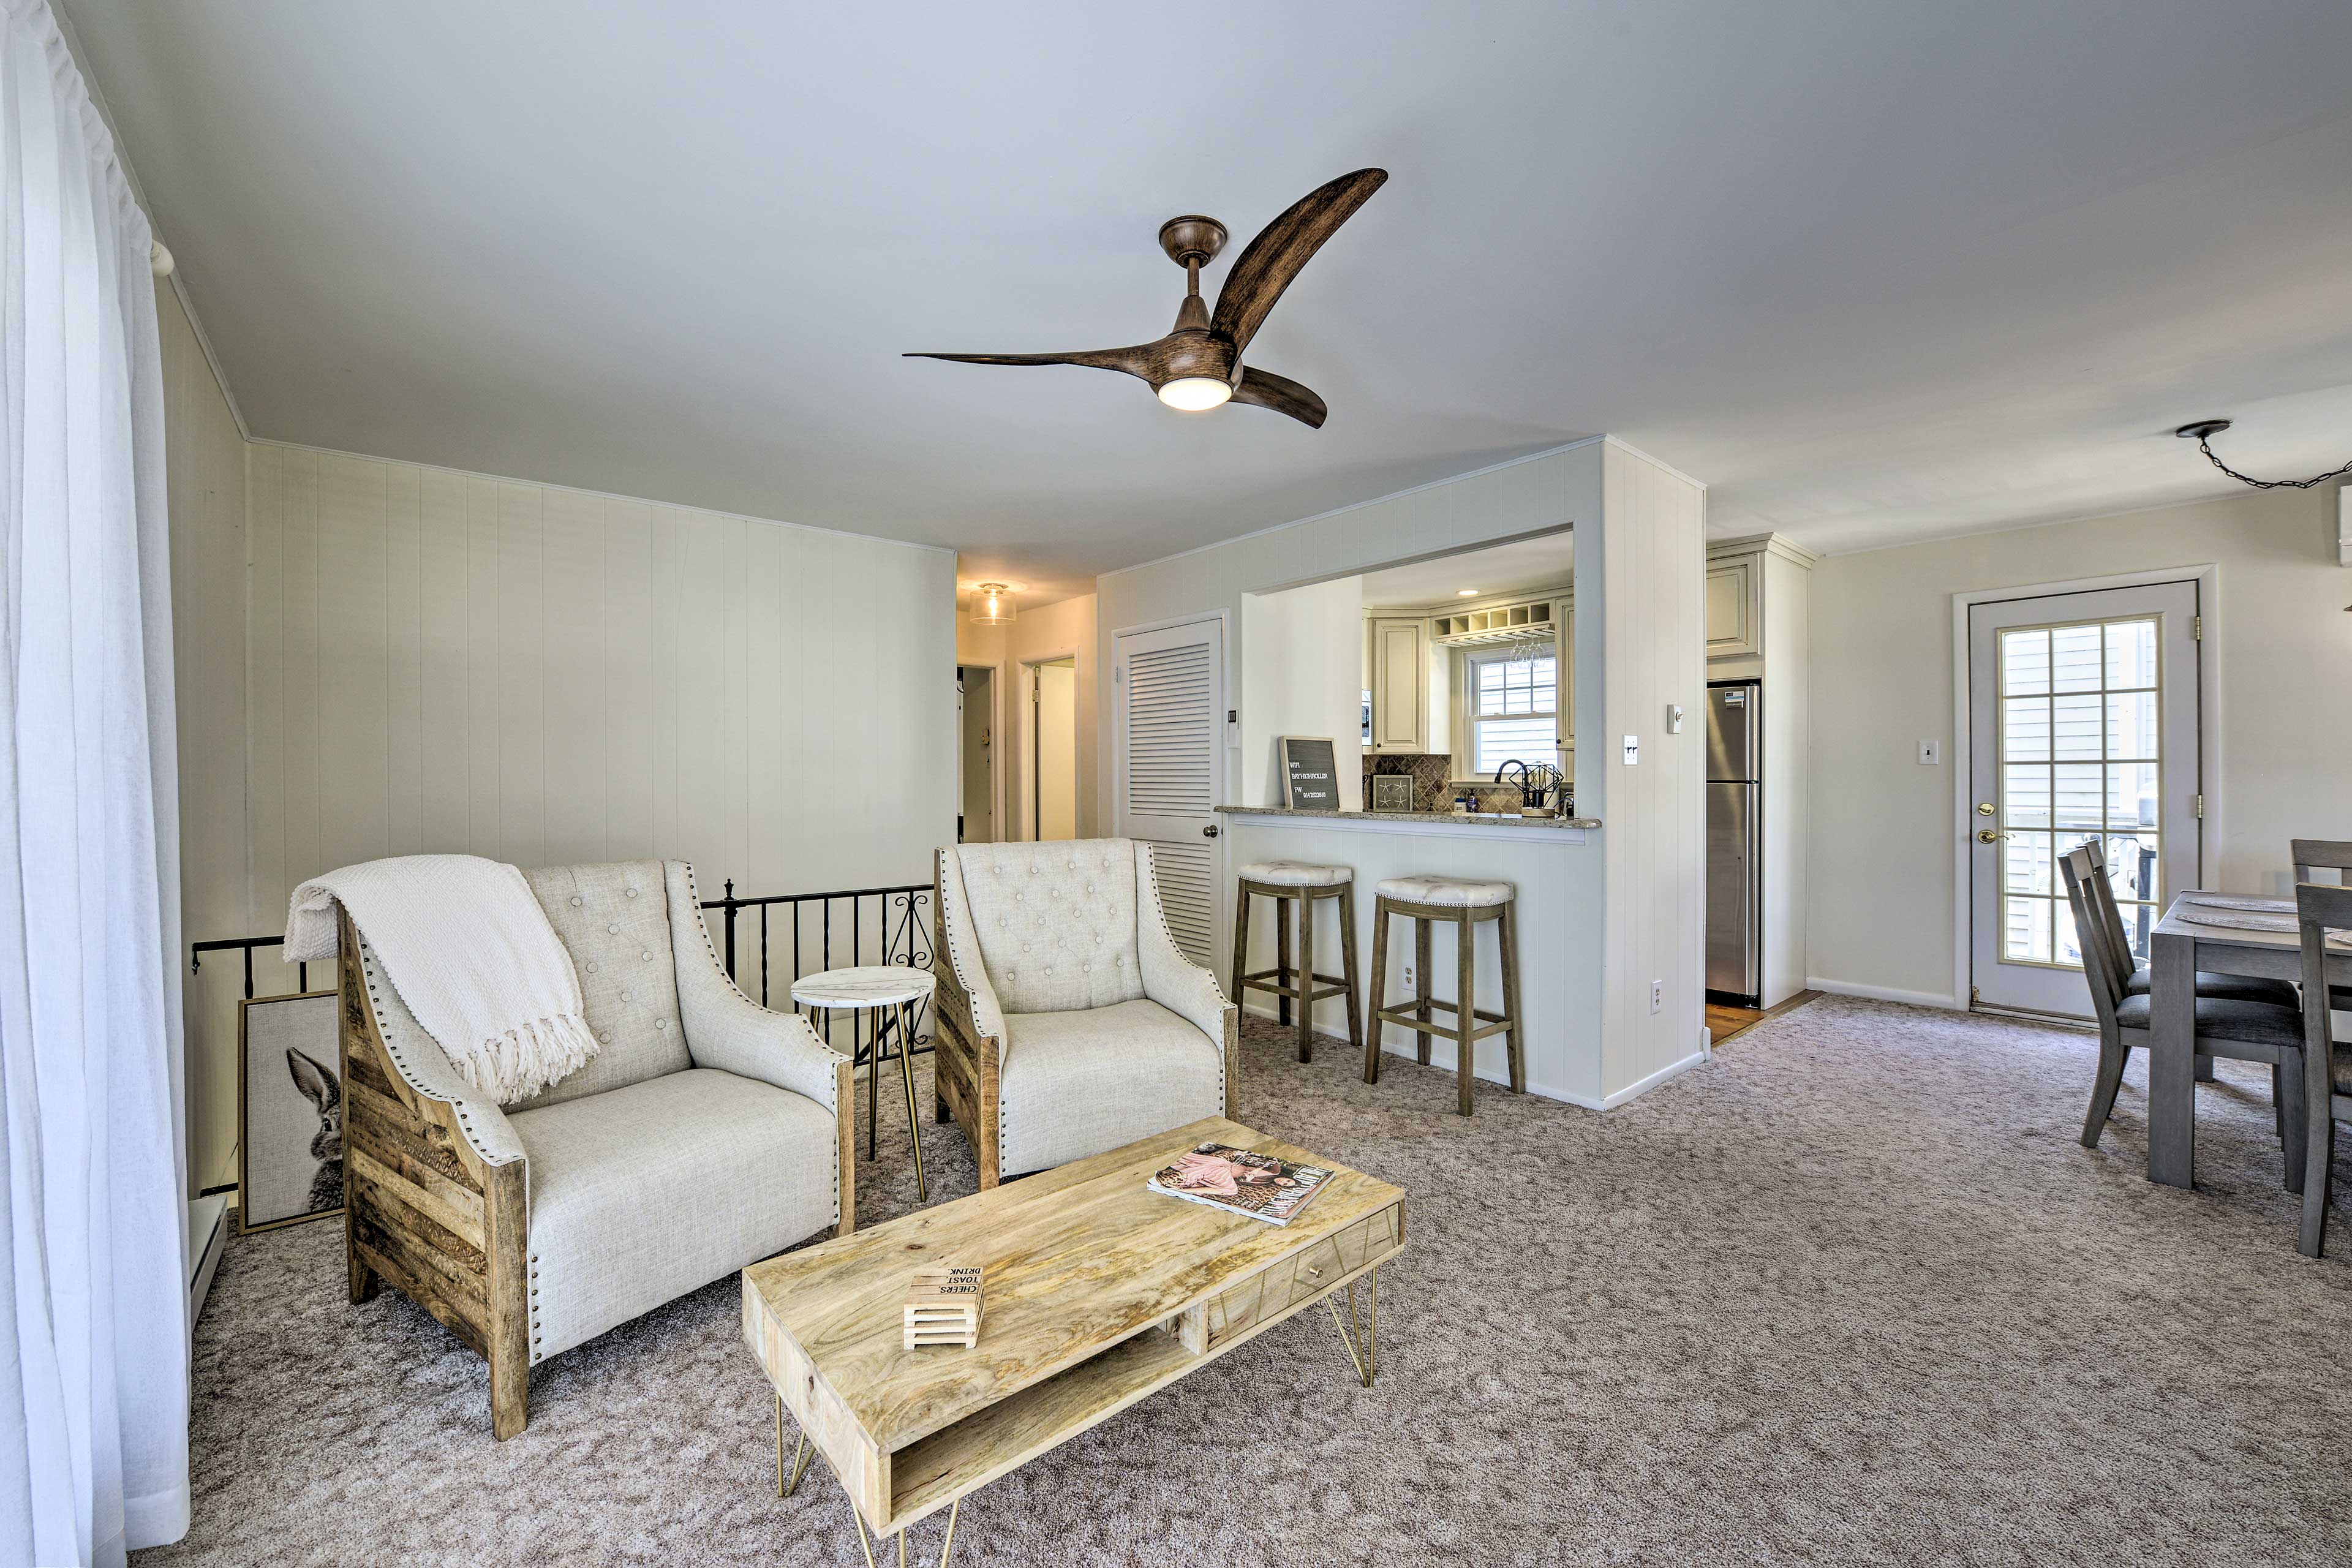 The 2-bedroom, 1-bathroom space is perfect for 6!